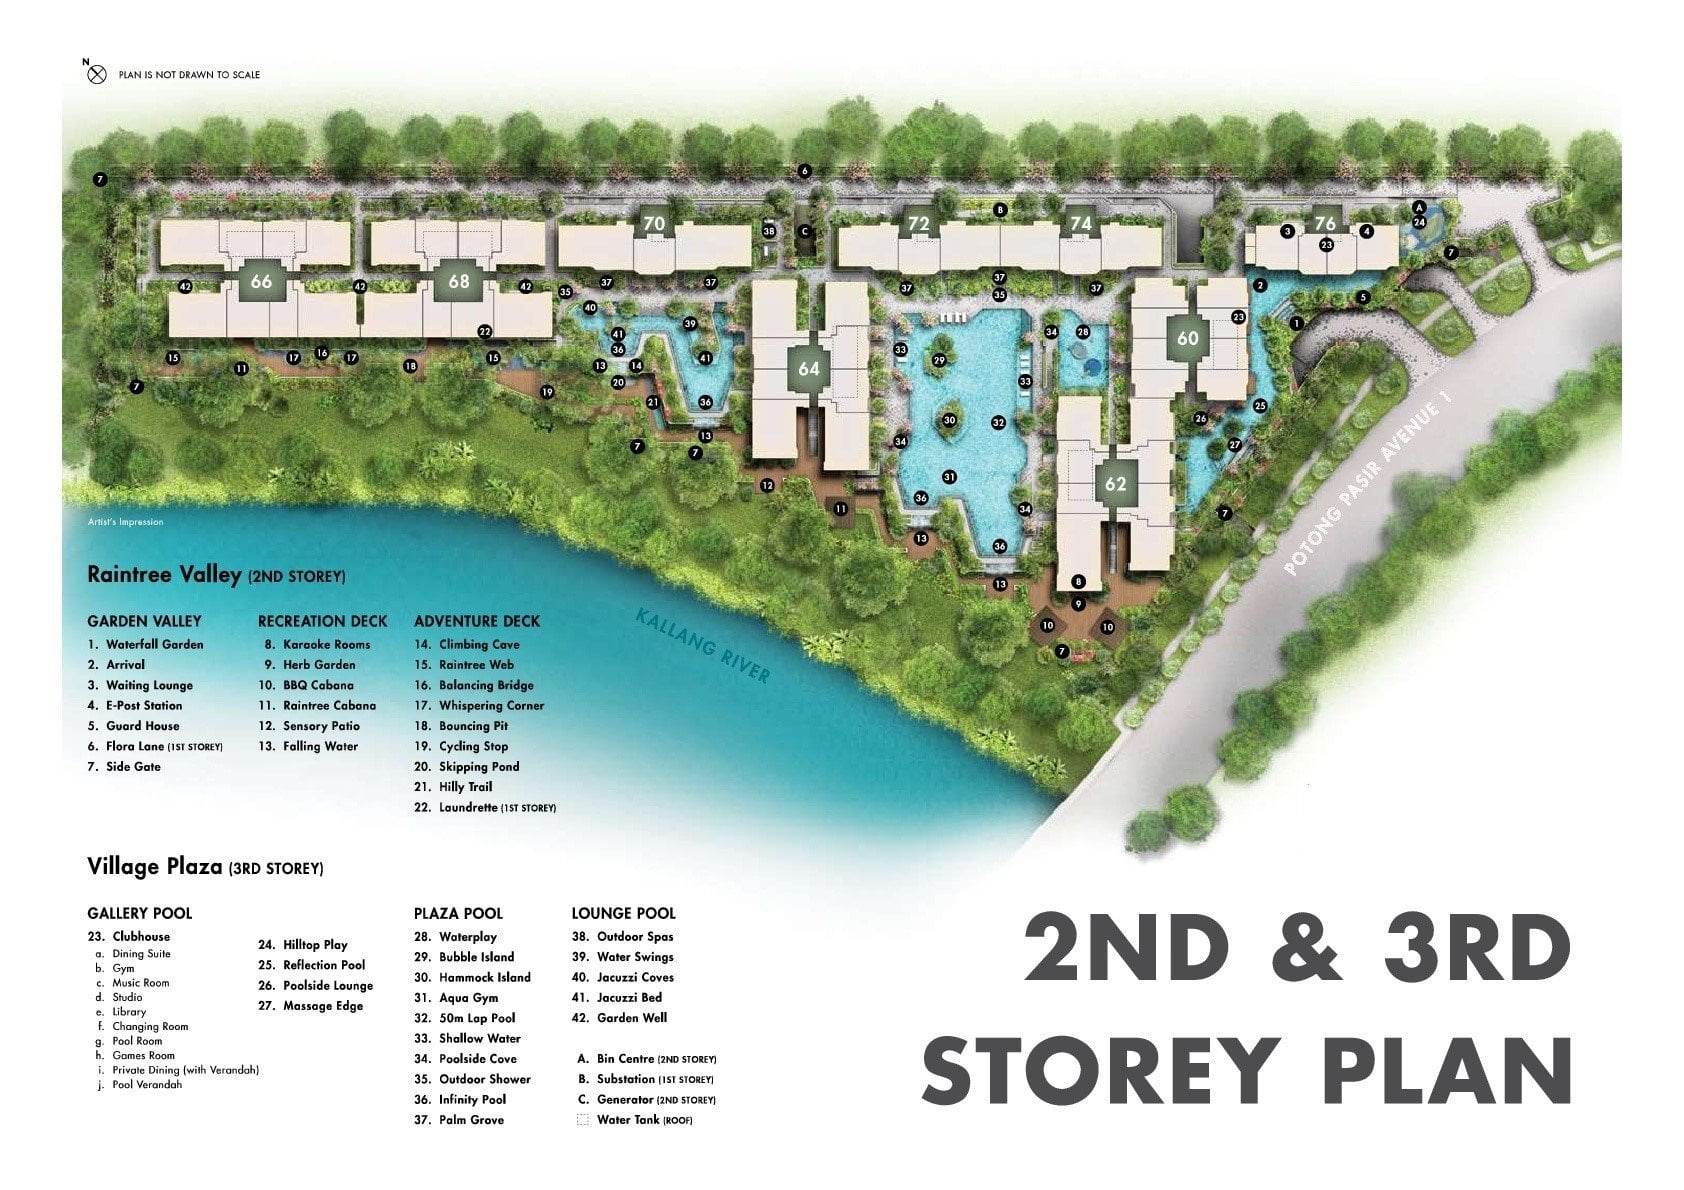 The Tre Ver Site Plan 2nd & 3rd